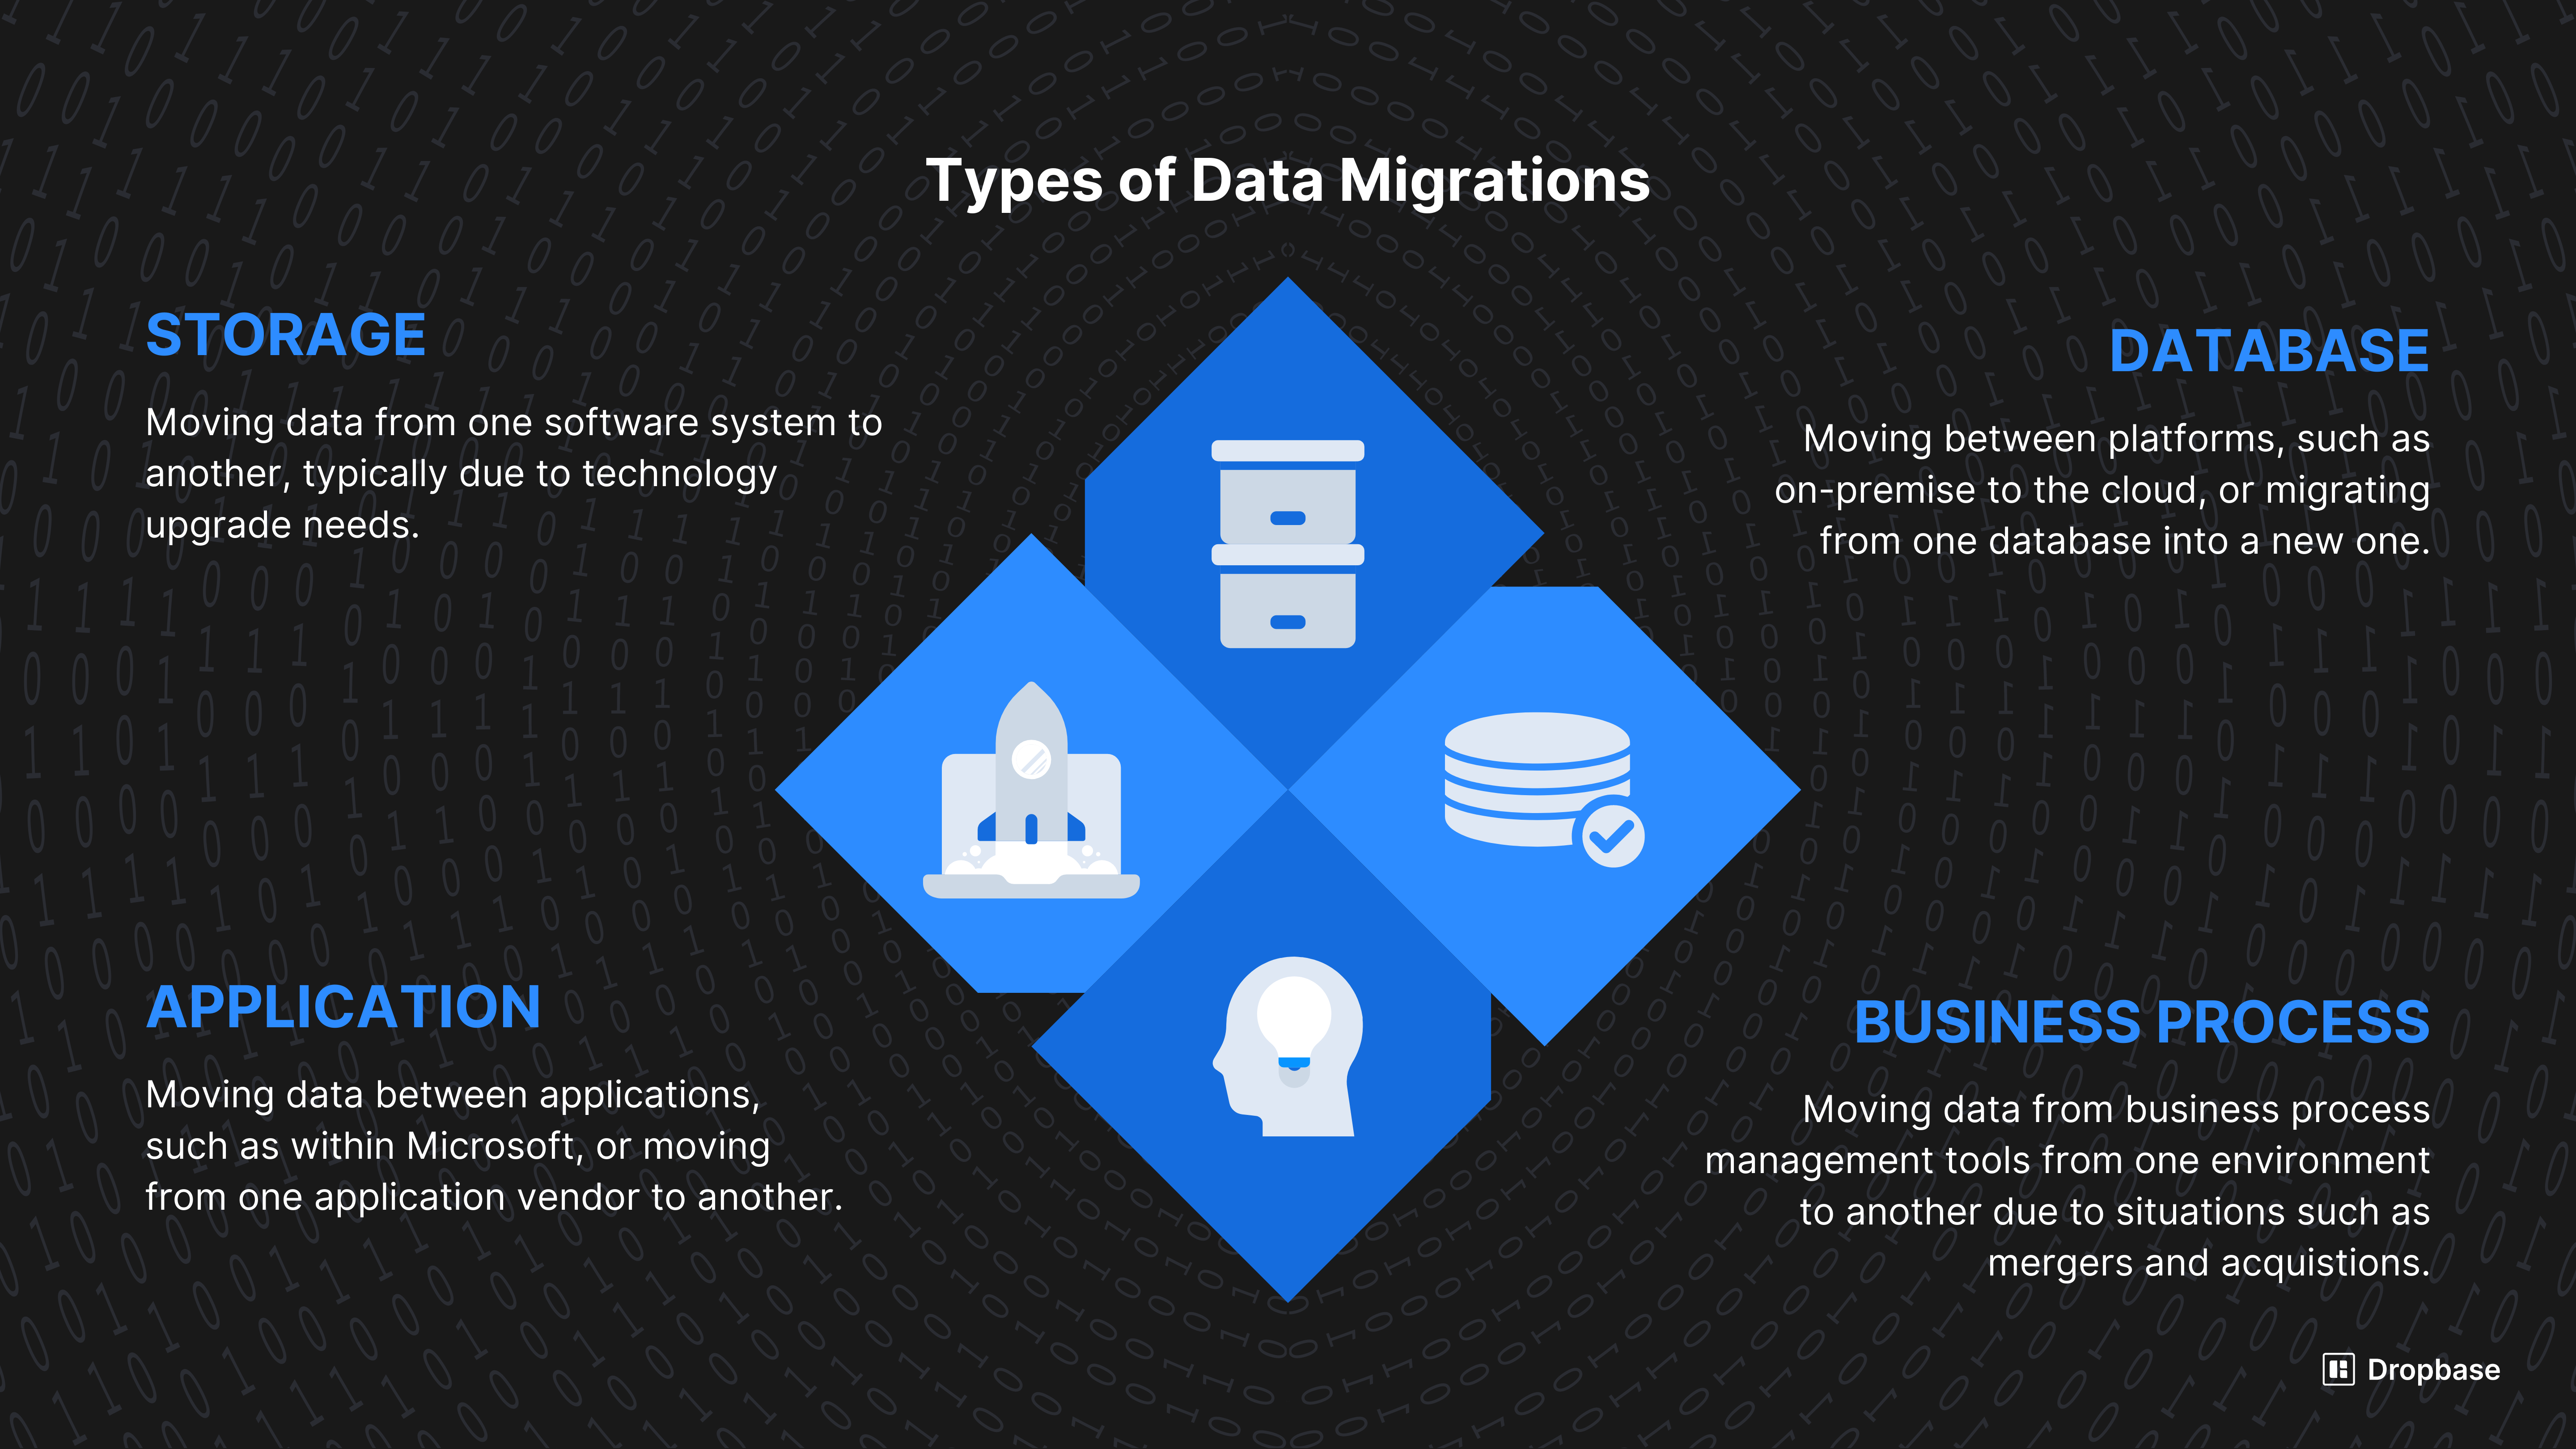 Types of data migrations